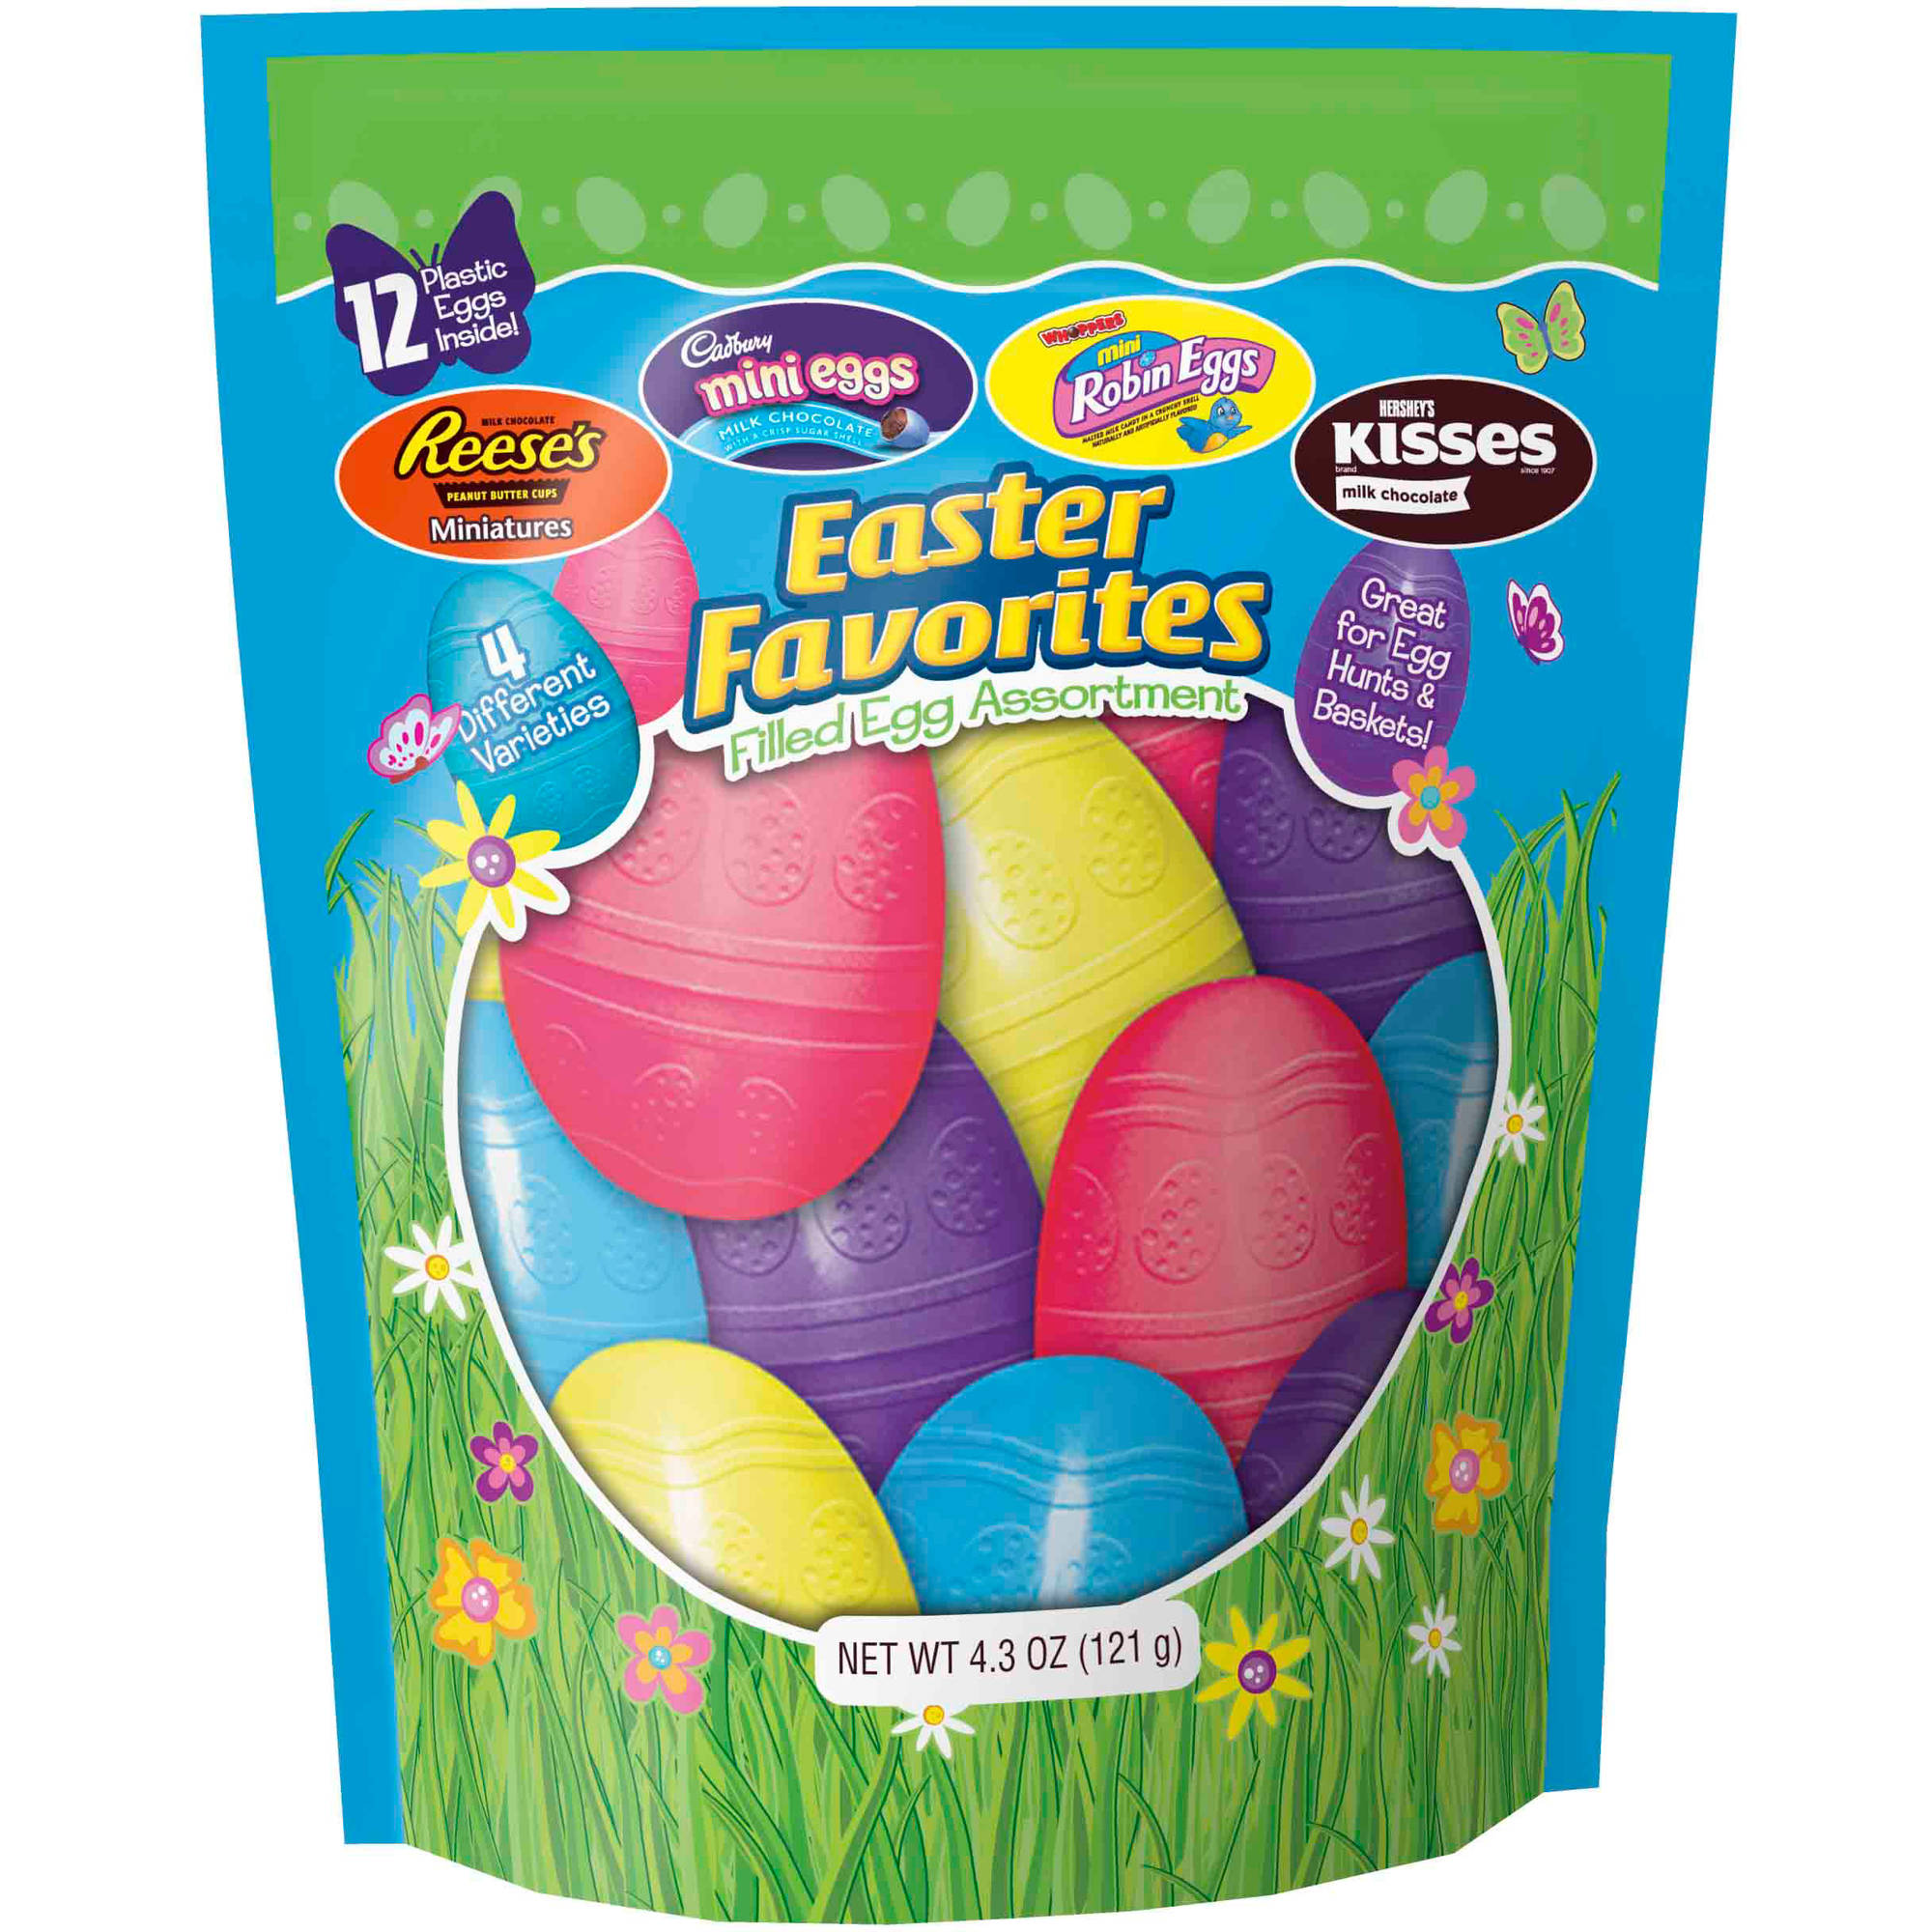 Hershey's Chocolate Filled Plastic Easter Egg Assortment Candy, 4.3 oz